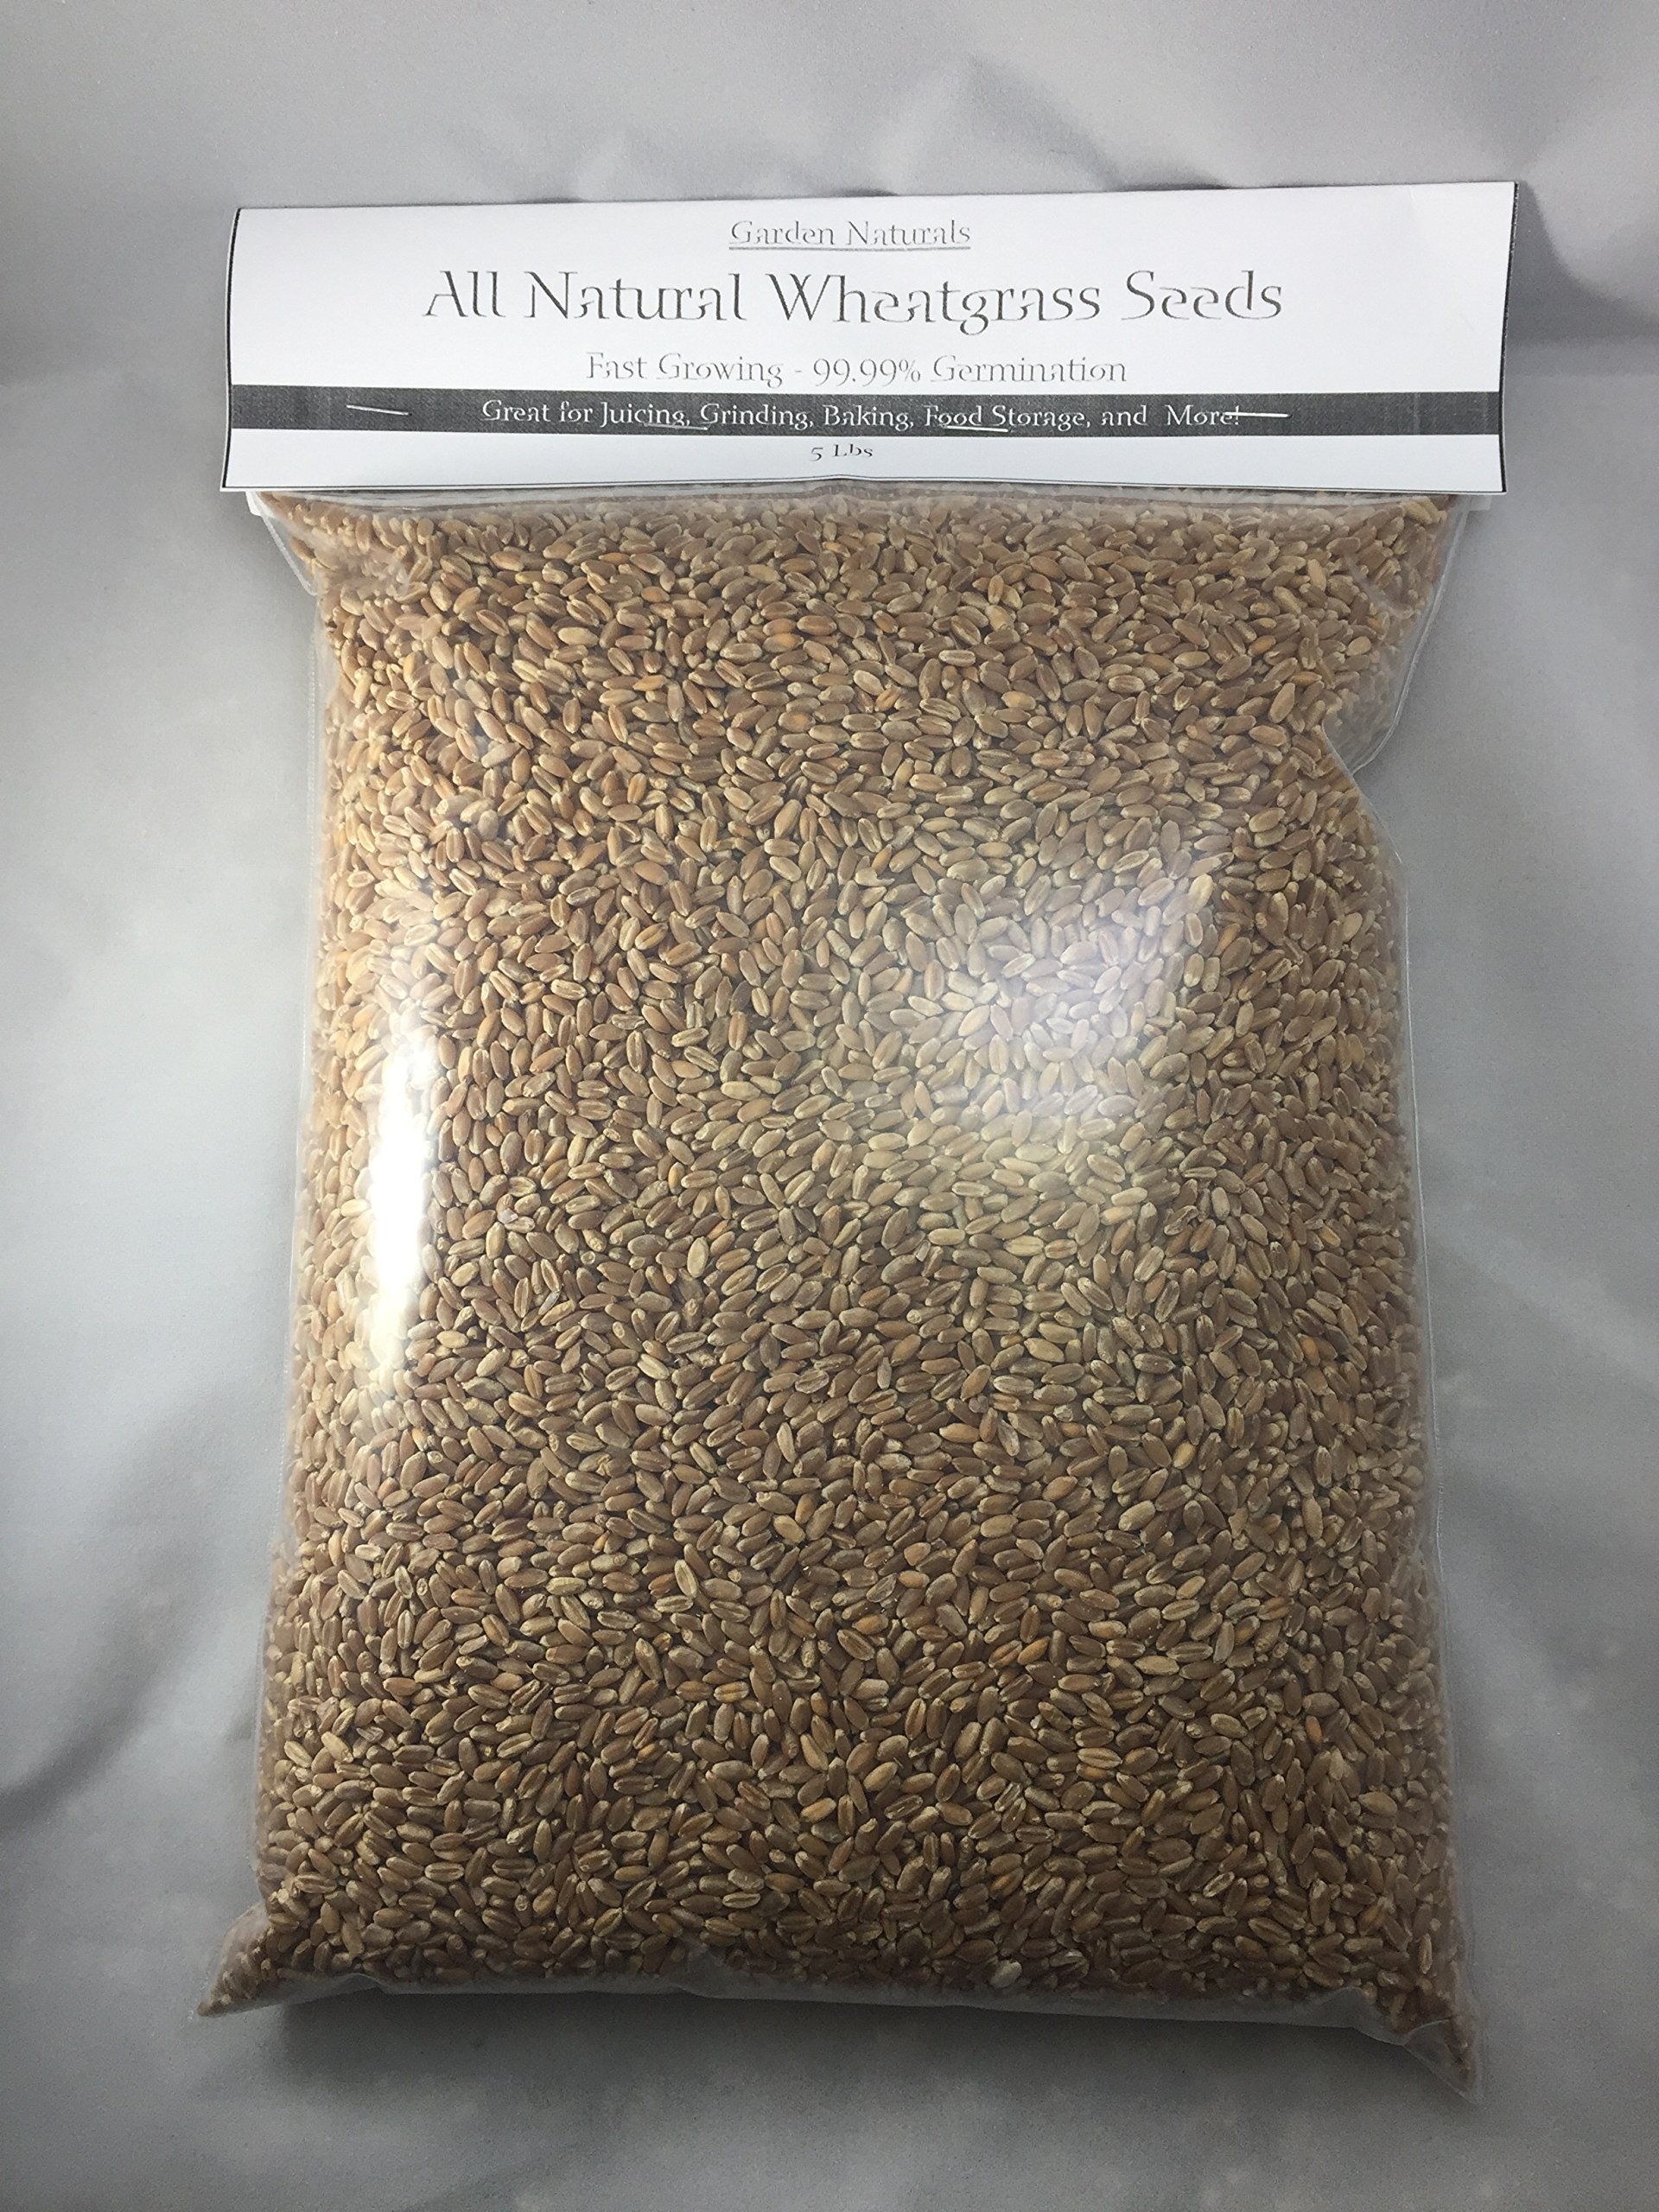 All Natural Wheatgrass by Garden Naturals 50 Lbs 99.99% Germination - Guaranteed to Grow!